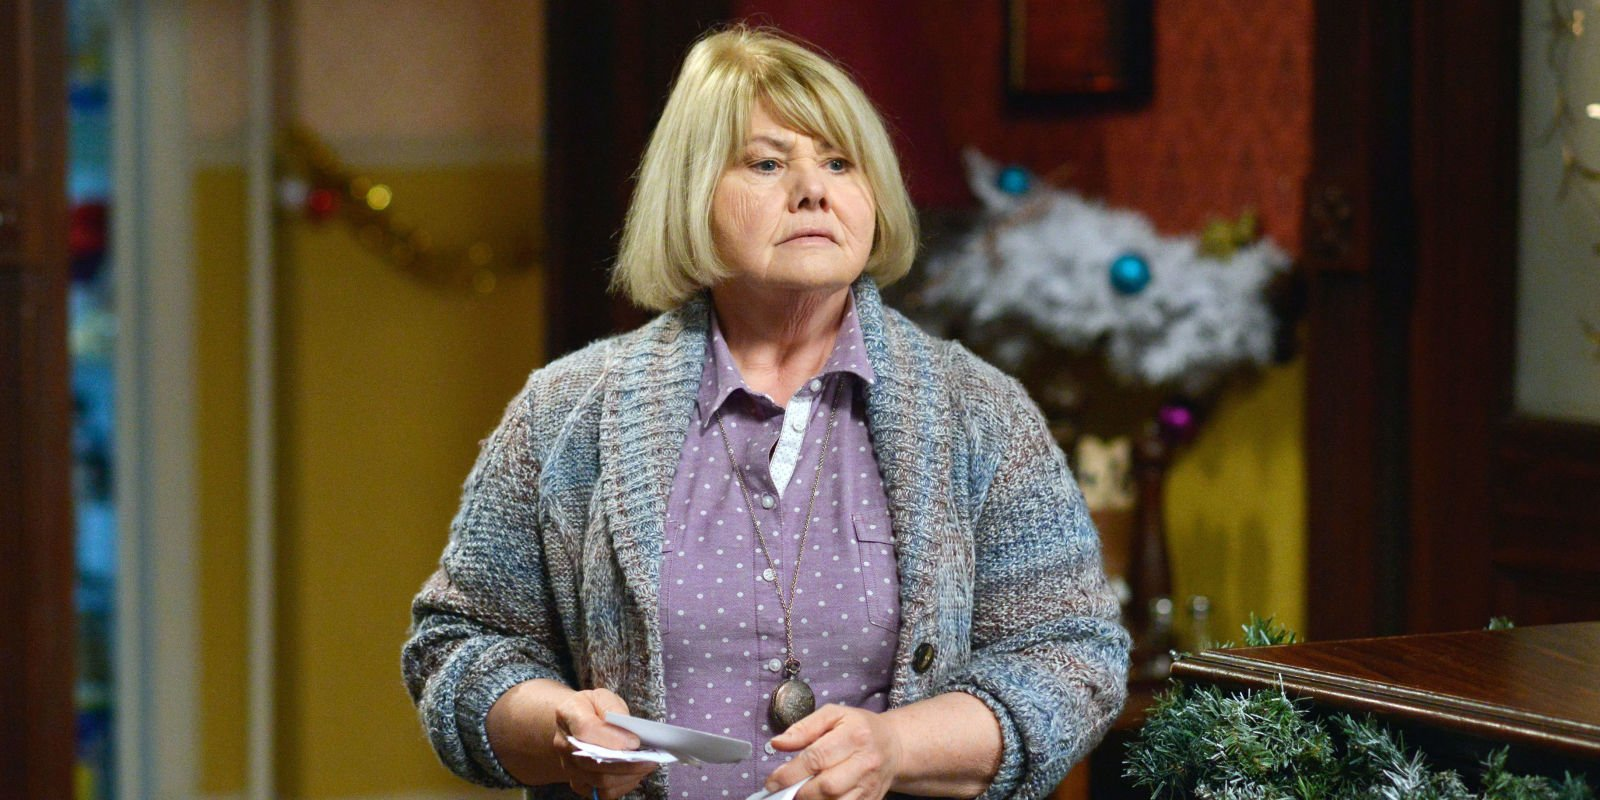 EastEnders star Annette Badland received threats for her role as twisted Aunt Babe